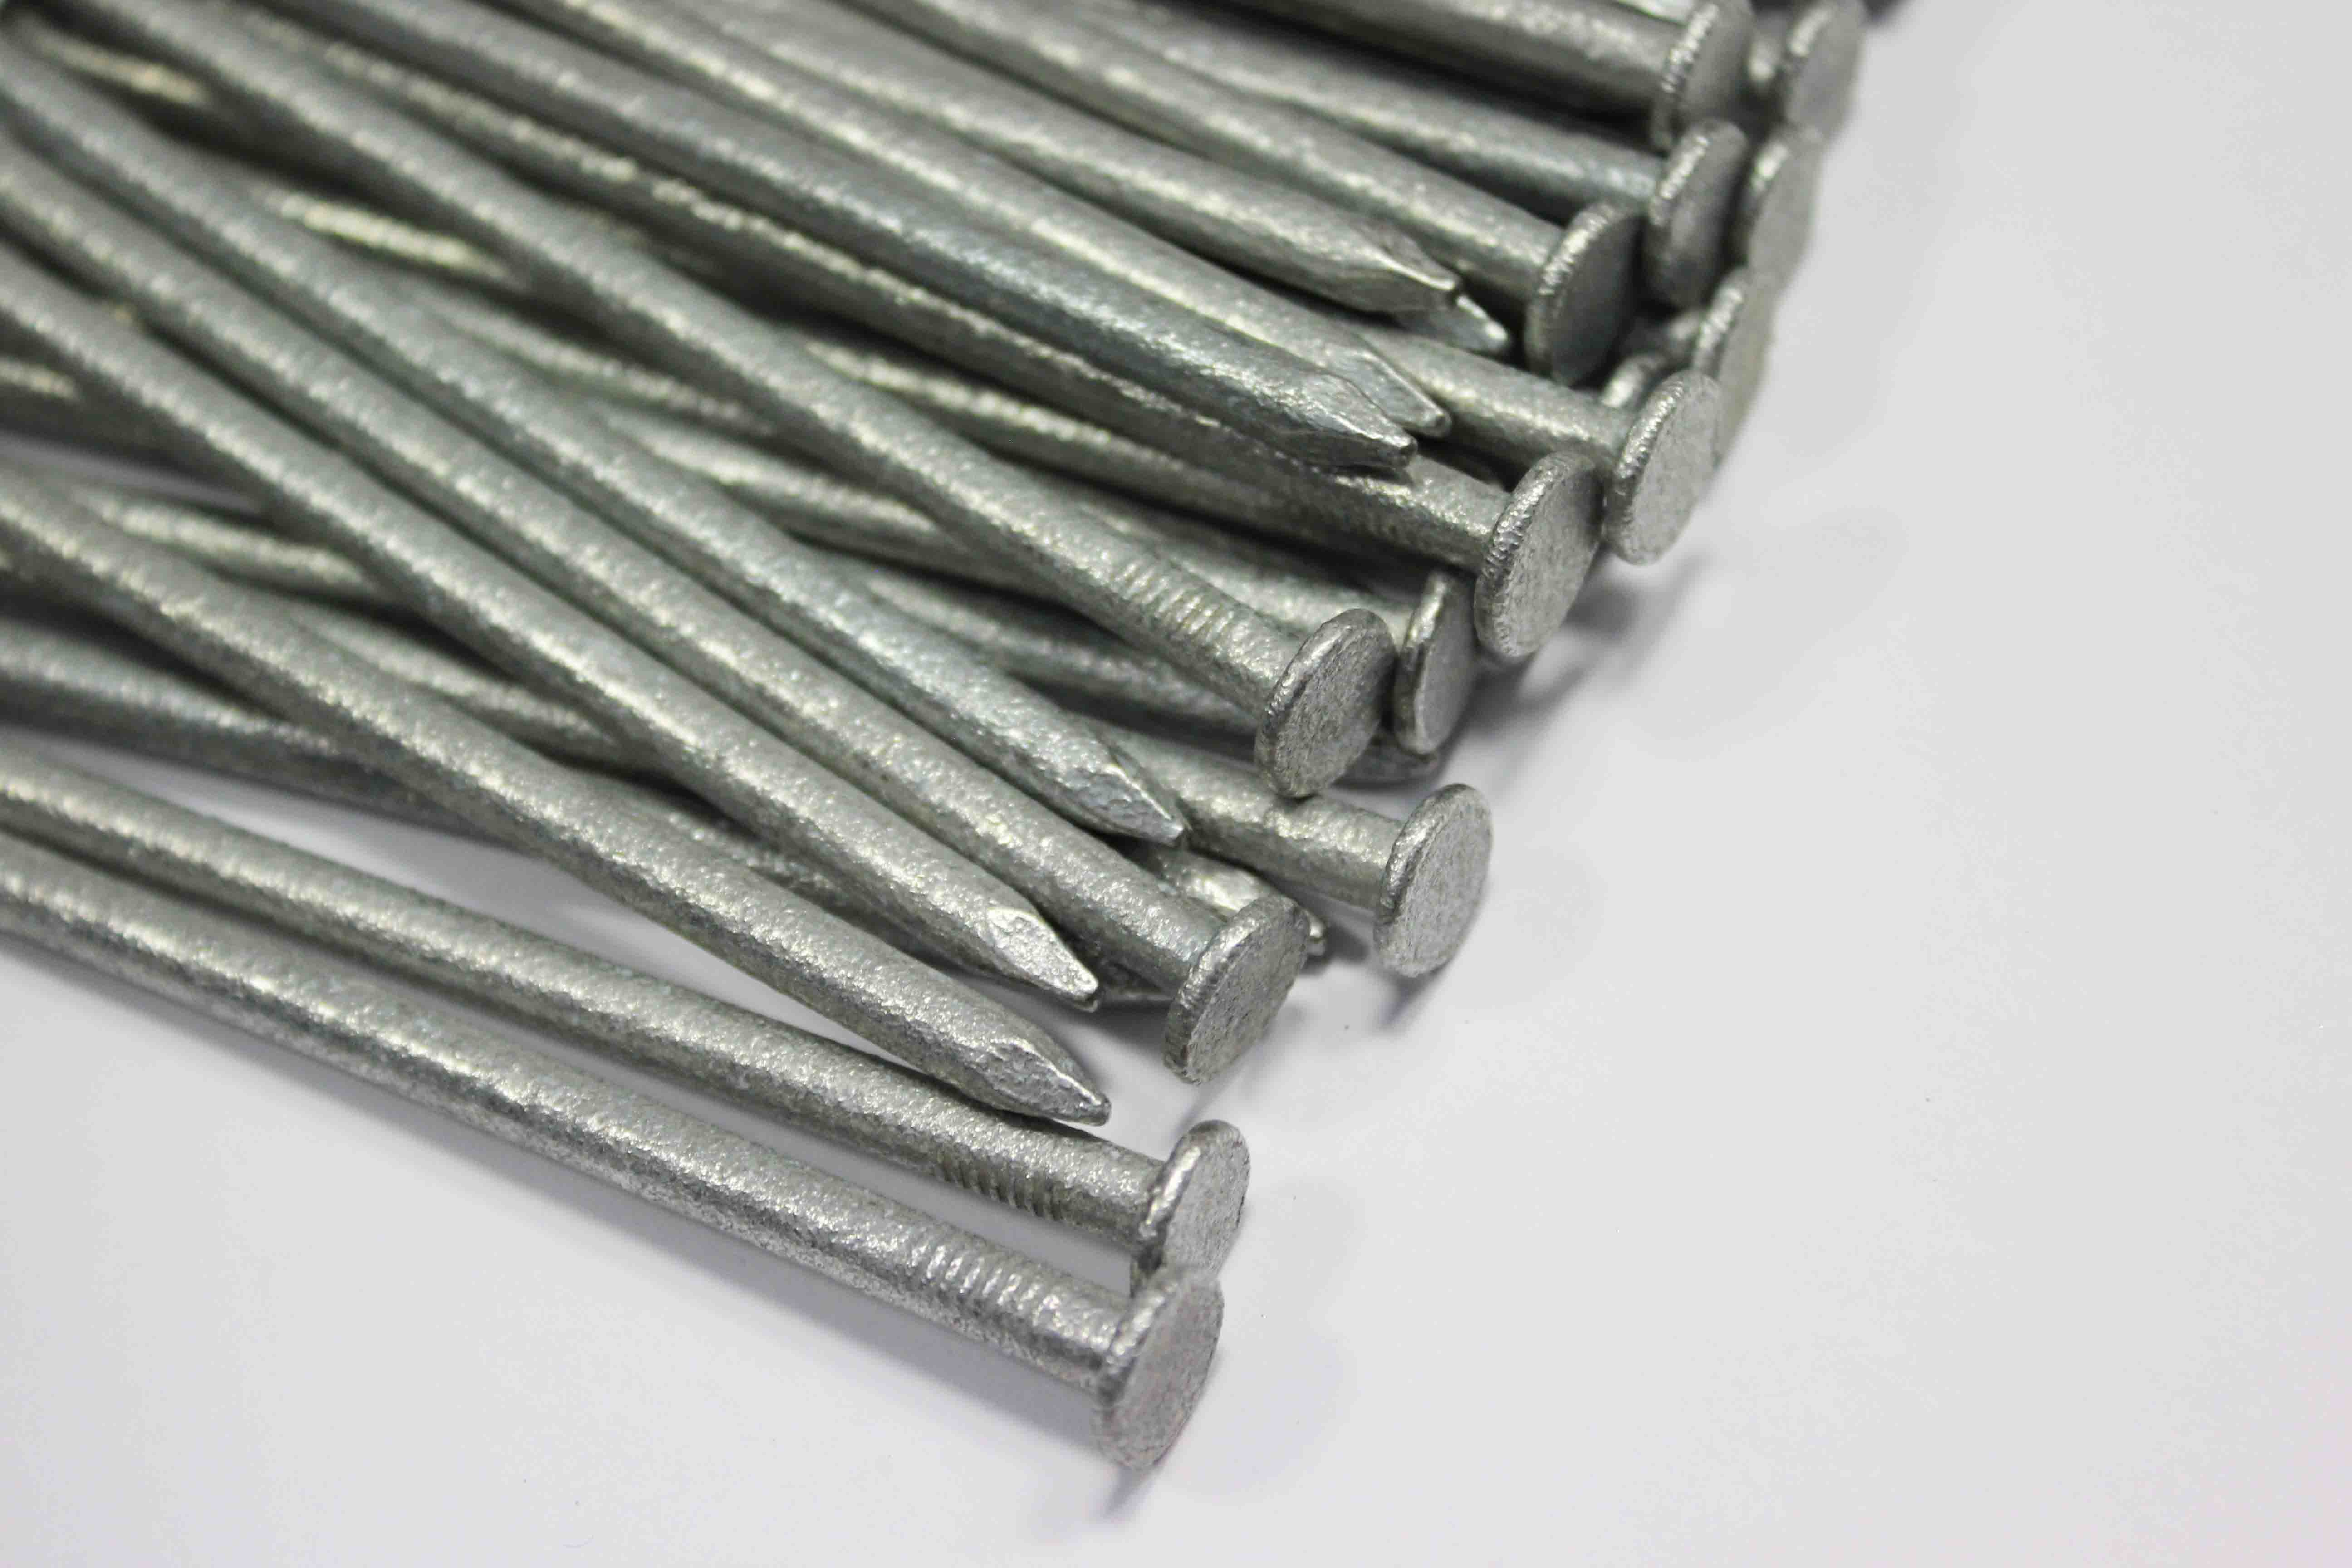 Galvanised 100mm fencing nails